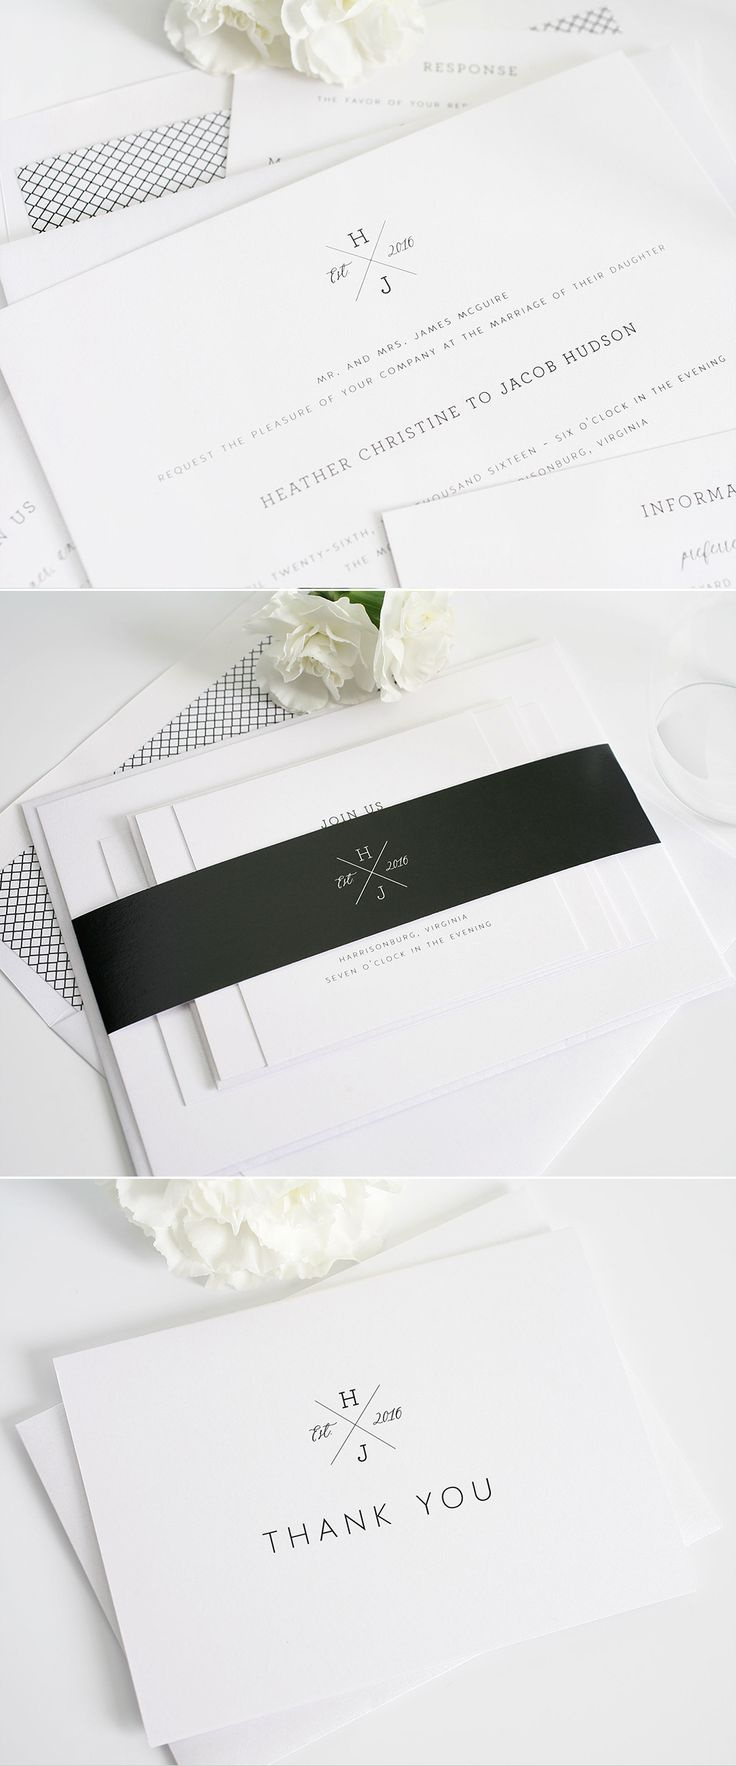 Monogrammed wedding invitations from Shine Wedding Invitations. http://www.shineweddinginvitations.com/wedding-invitations/cross-monogram-wedding-invitations